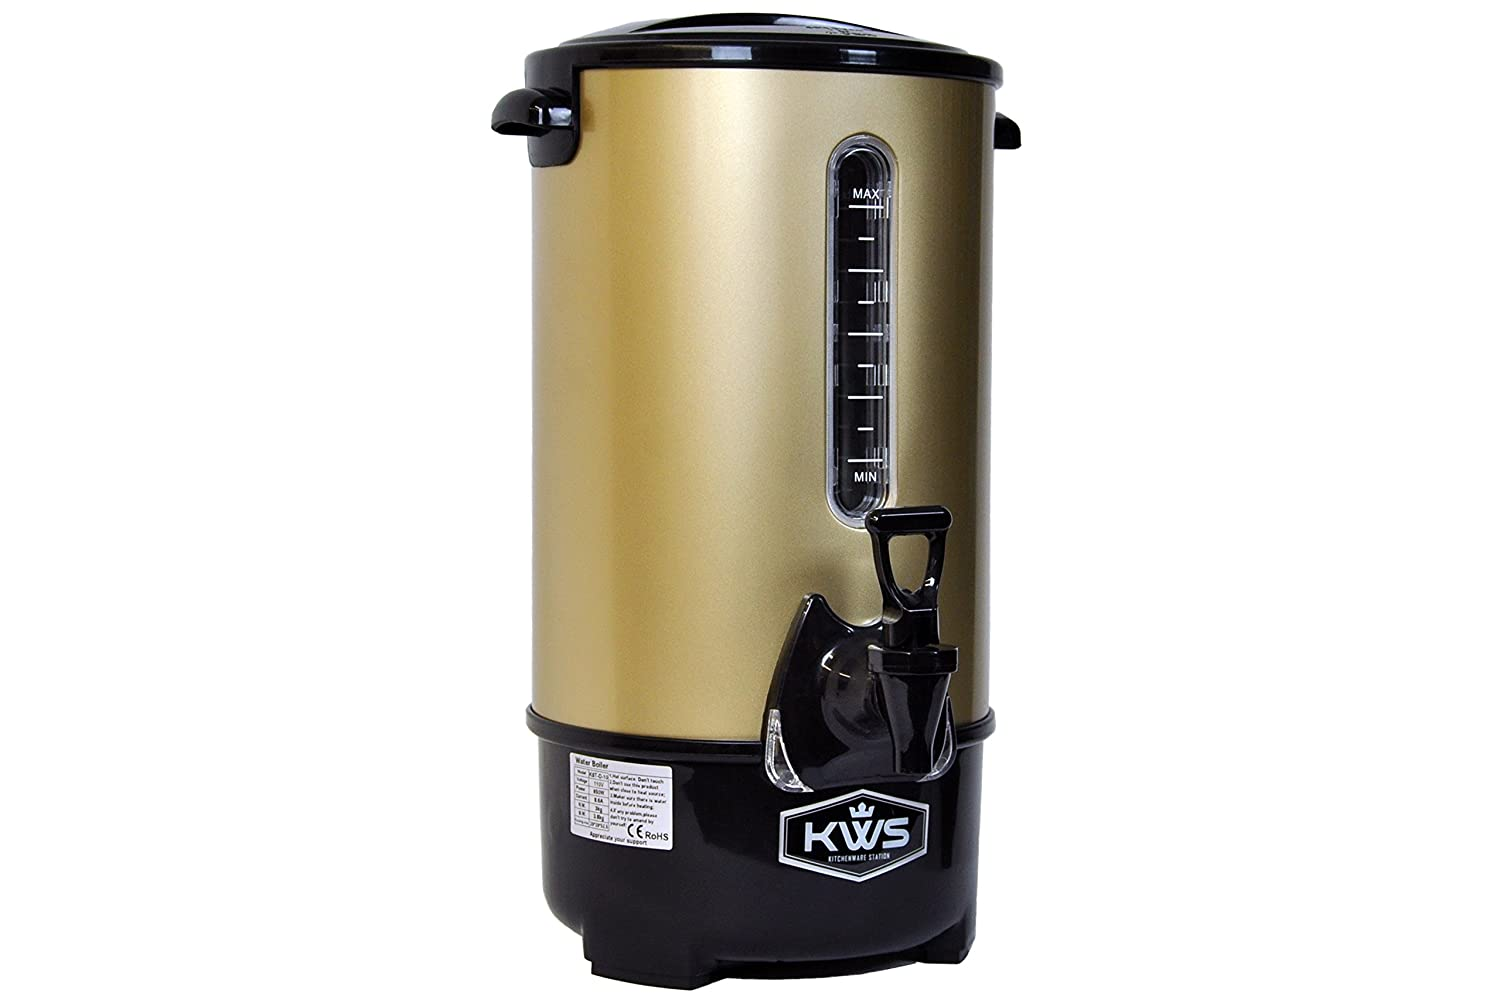 Sybo Commercial Grade Stainless Steel 15 Liters Coffee Maker Hot Water Heater Be Friendly In Use Business & Industrial